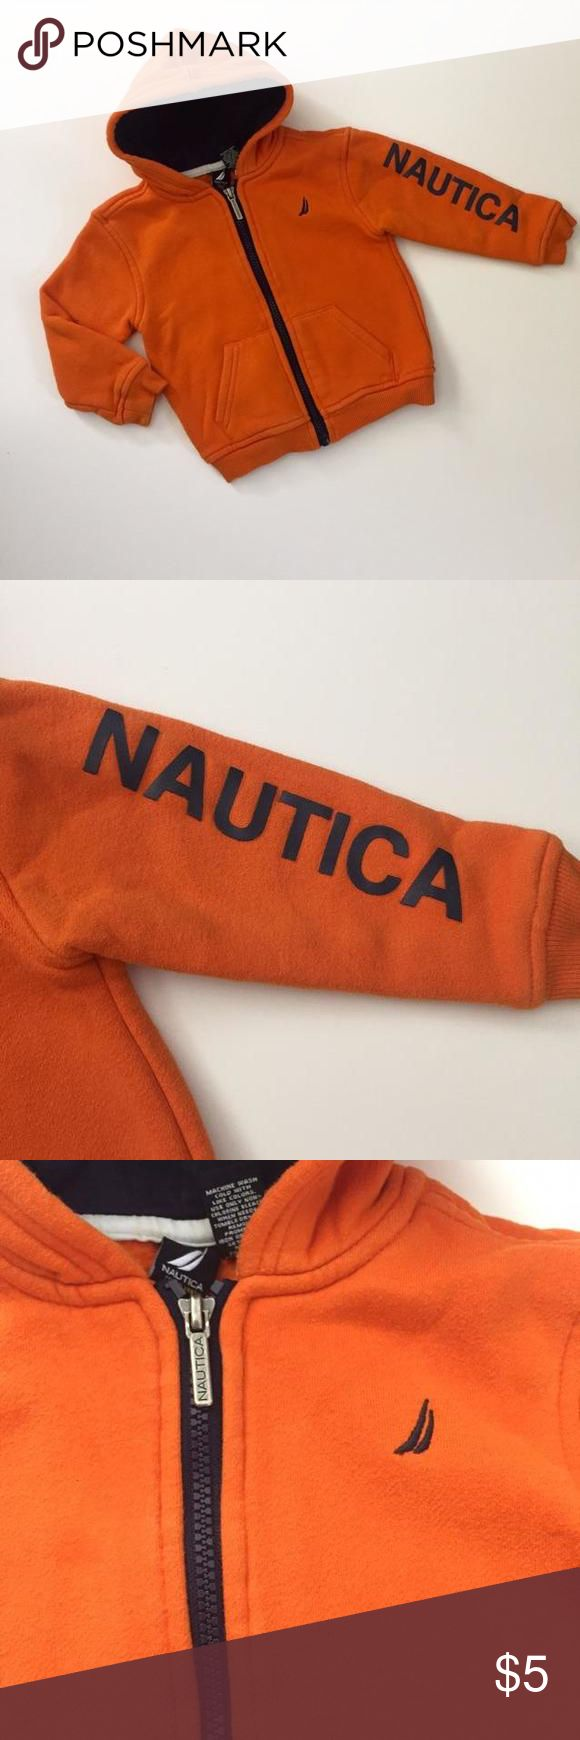 Nautica orange zip up hooded sweatshirt with logo down the side of the arm Gently used in good condition. Has a small very light spot as shown and some slight fuzzies from normal wash and wear Nautica Shirts & Tops Sweatshirts & Hoodies